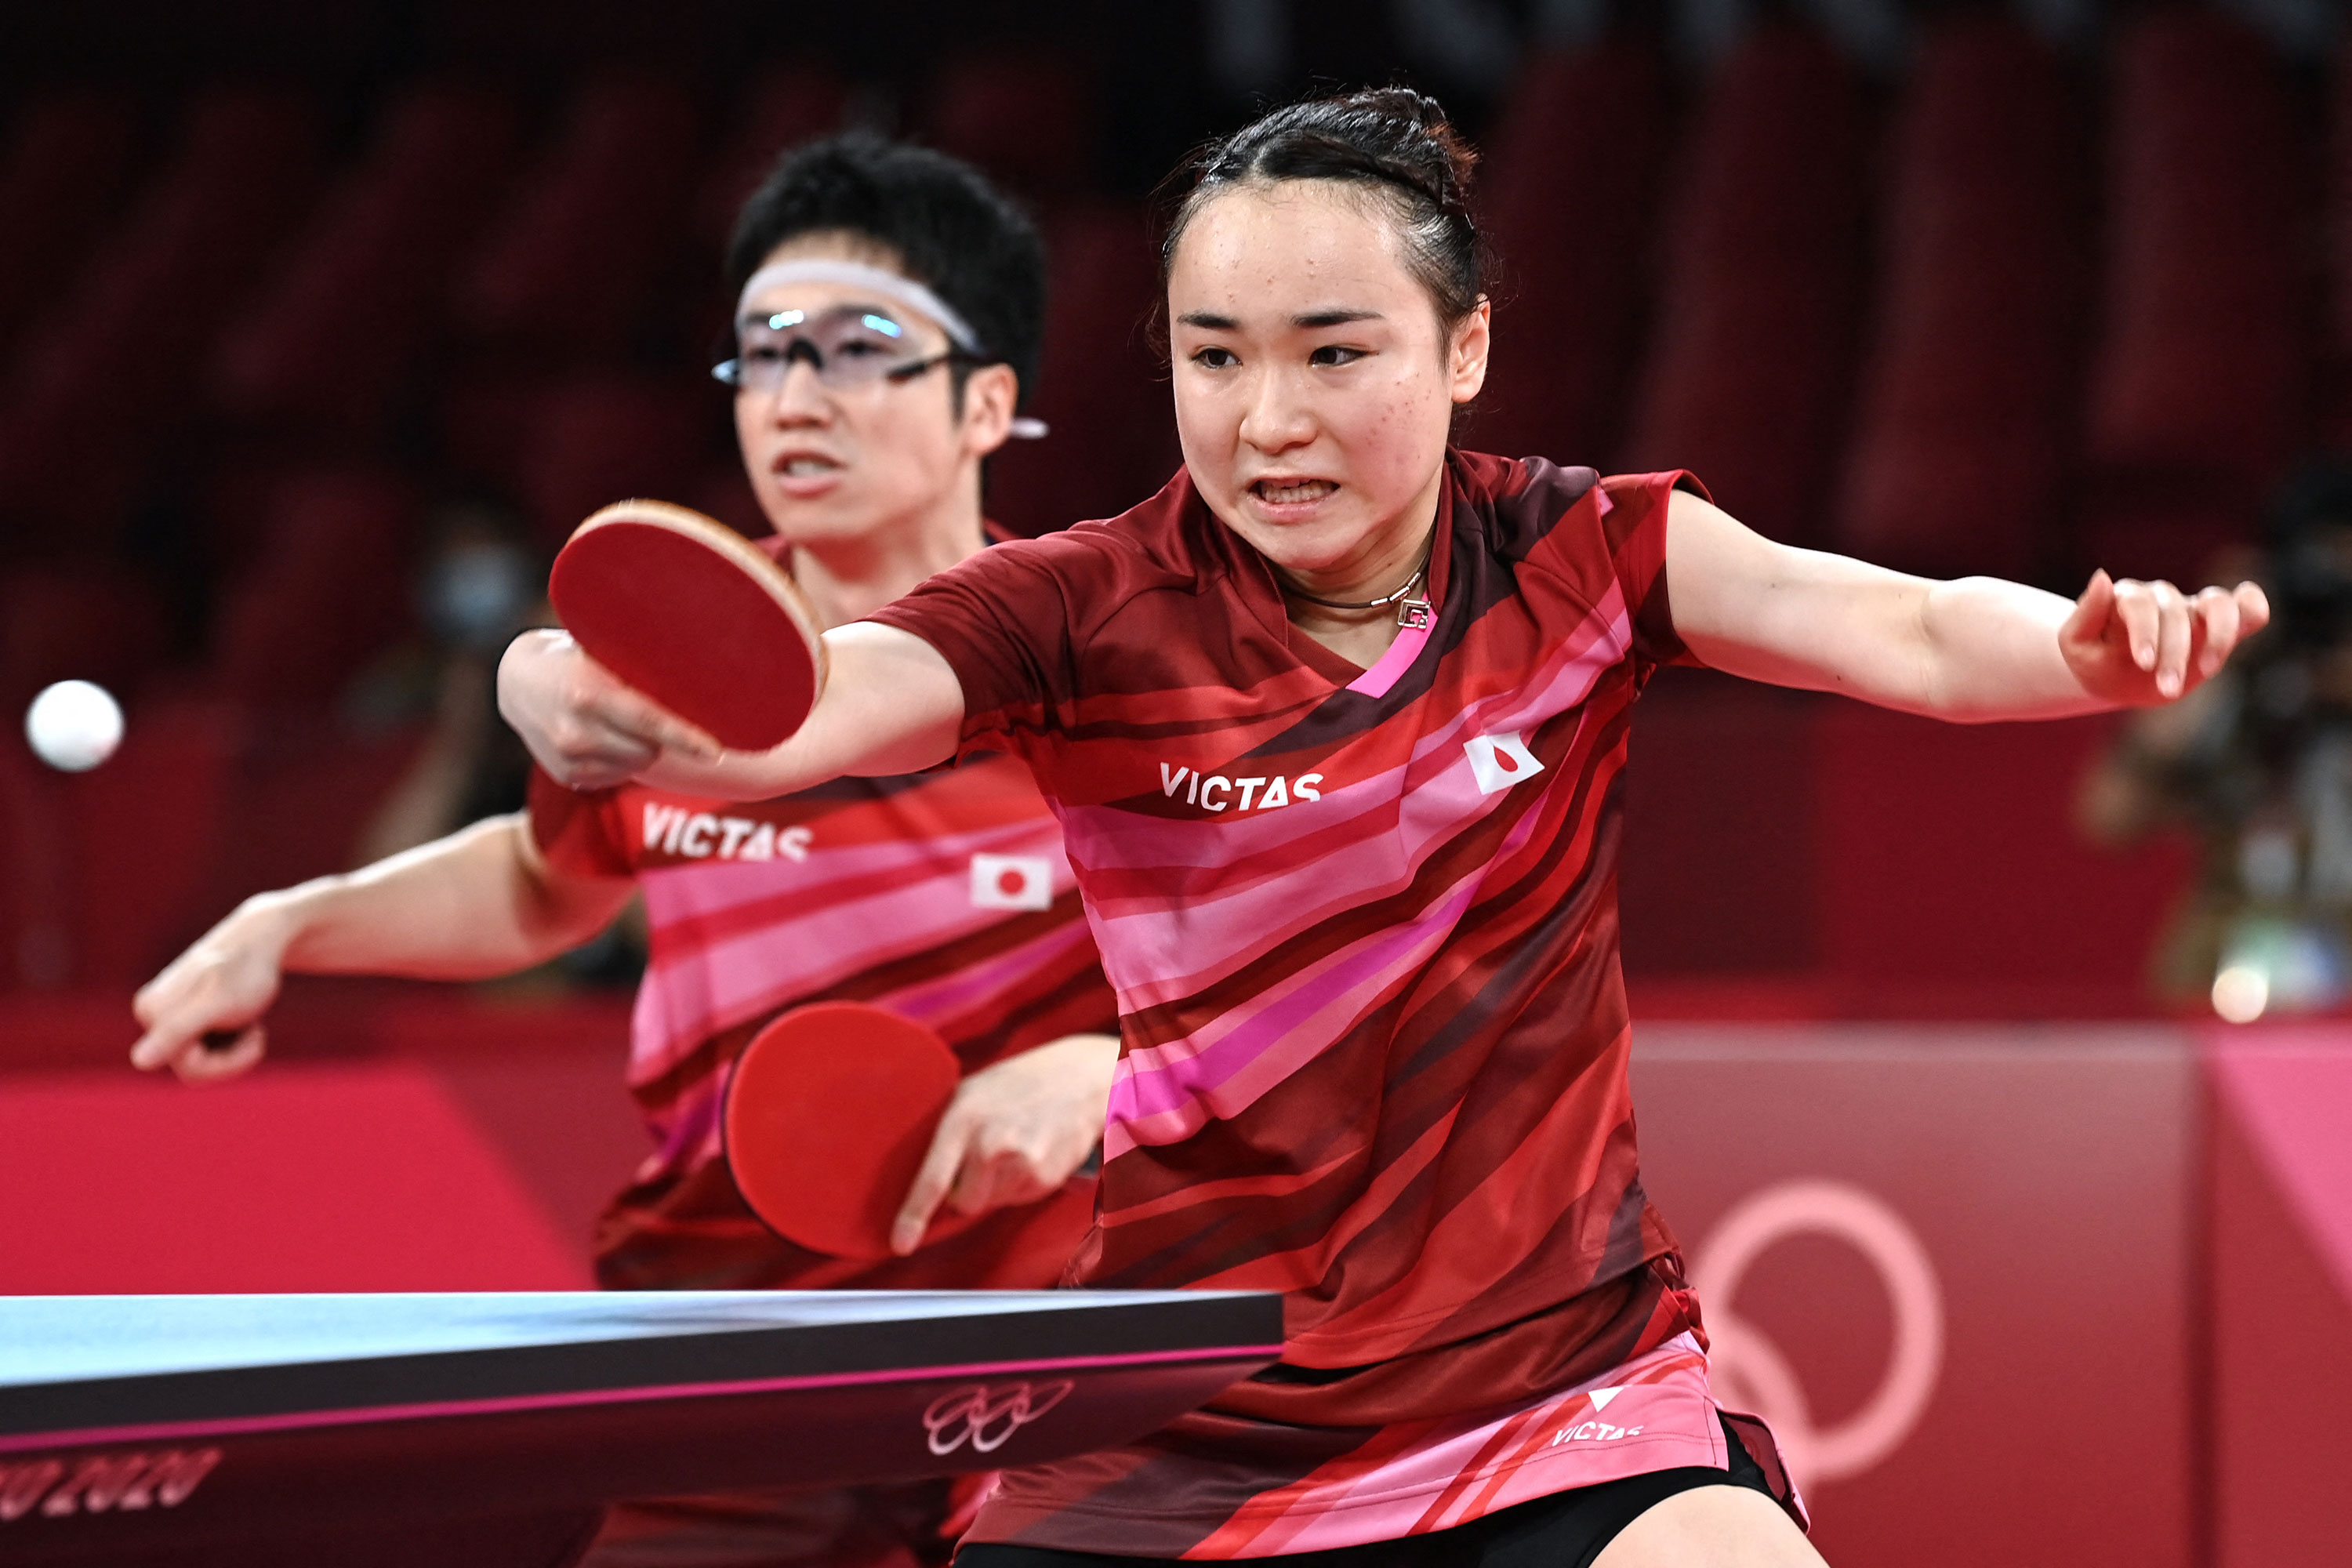 Japan's Jun Mizutani, left, and Mima Ito compete against China's Xu Xin and Liu Shiwen in their mixed doubles table tennis final match on July 26.